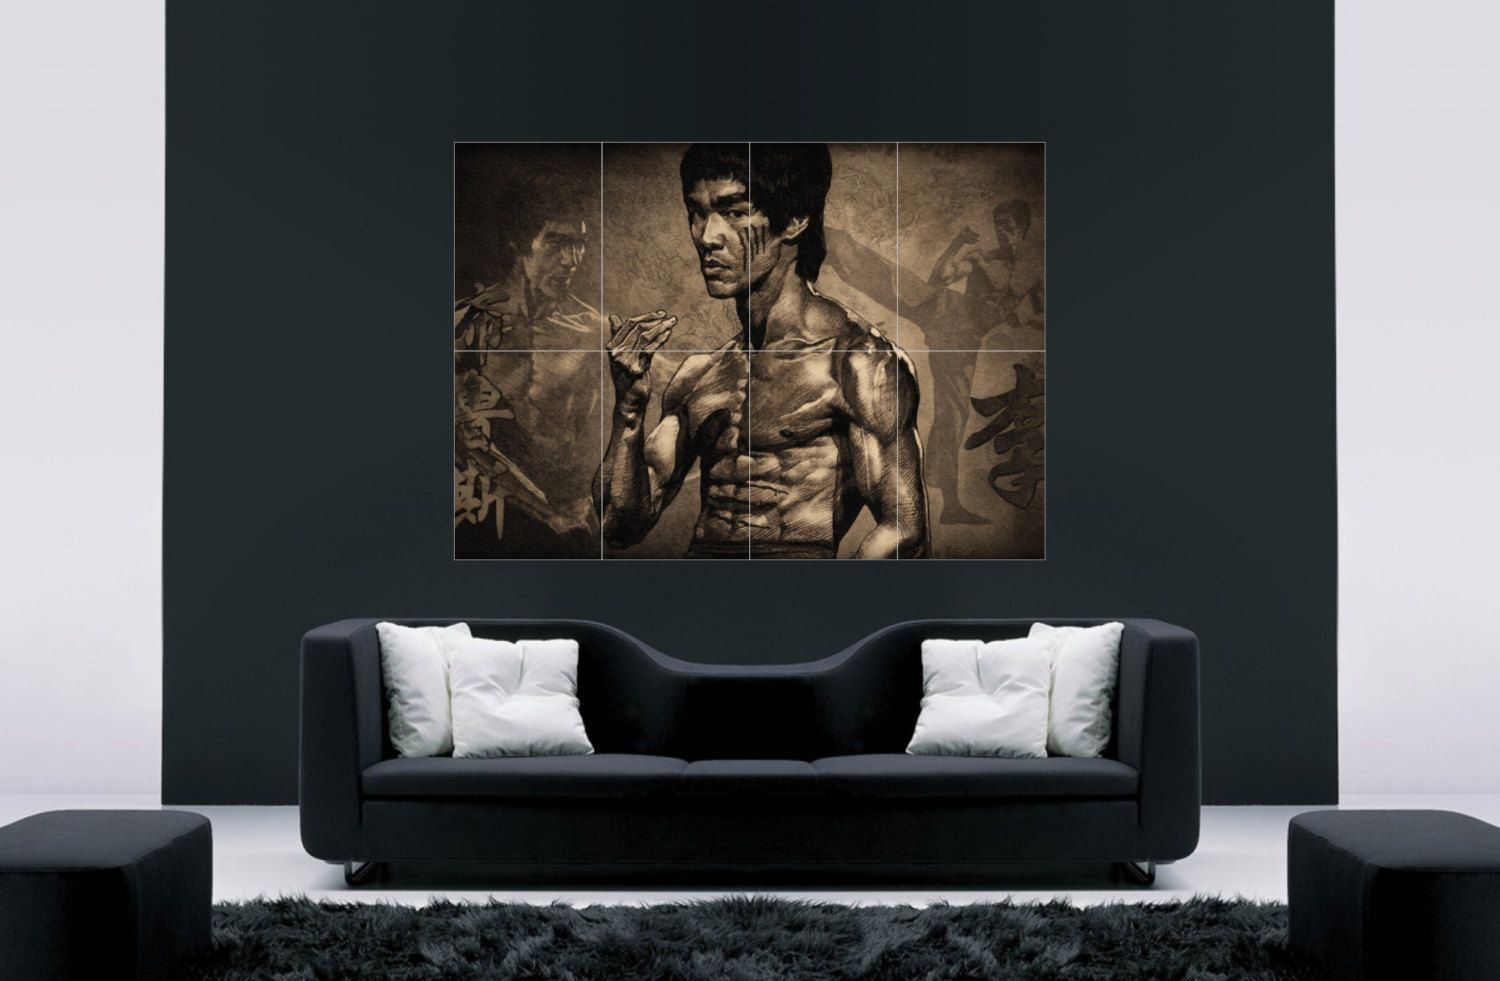 Bruce Lee Martial Arts Movie Wall Decor Wall Art Giant Poster 46 X32 Bruce Lee Martial Arts Wall Art Decor Giant Poster